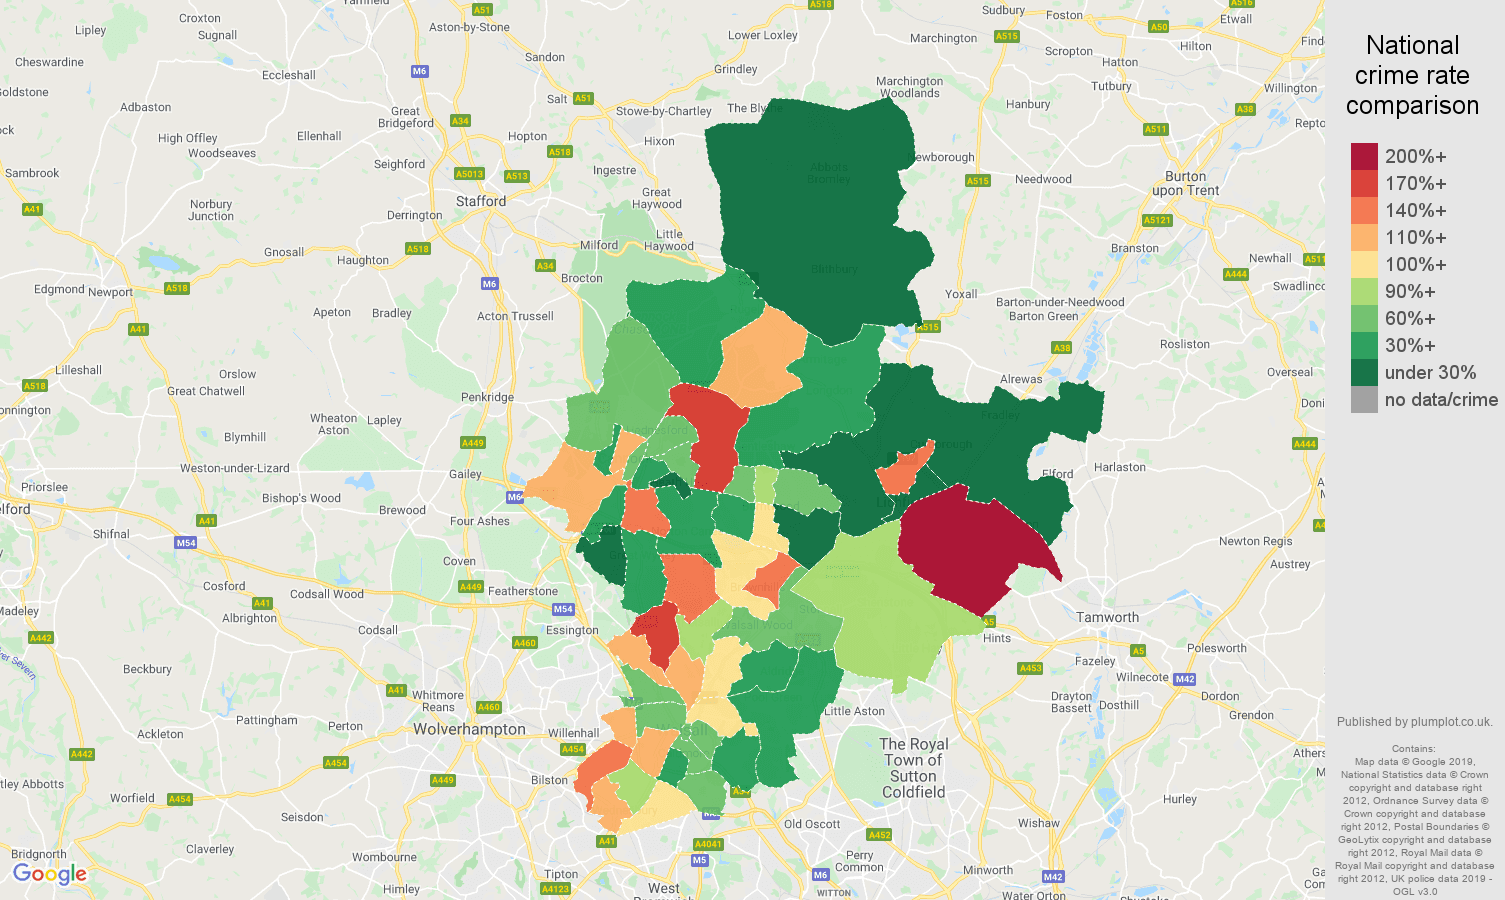 Walsall other crime rate comparison map